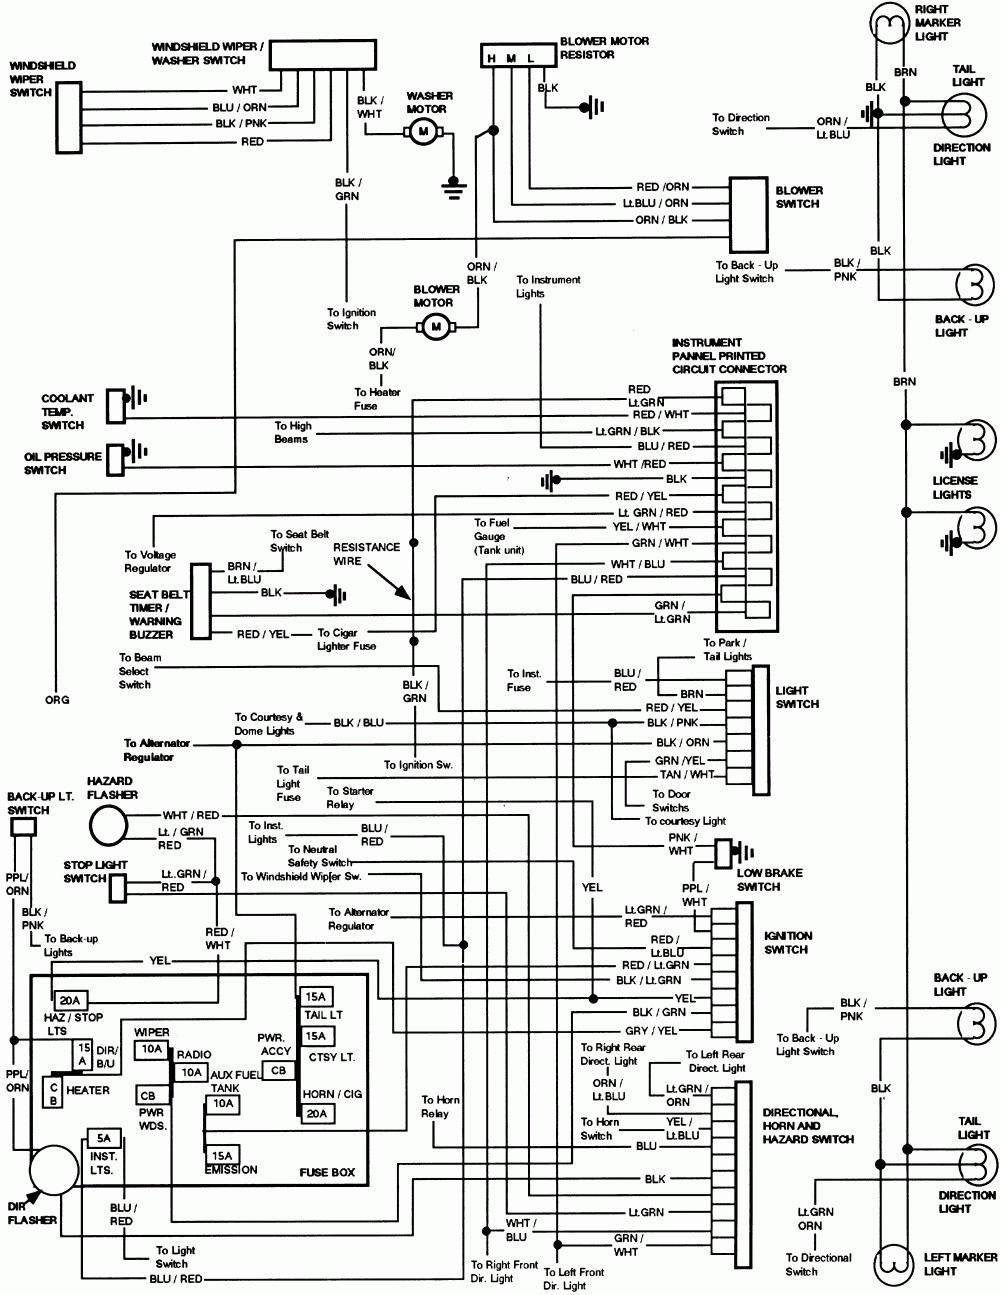 hight resolution of ford f550 wiring diagram wiring diagram log 2010 ford f550 wiring diagram